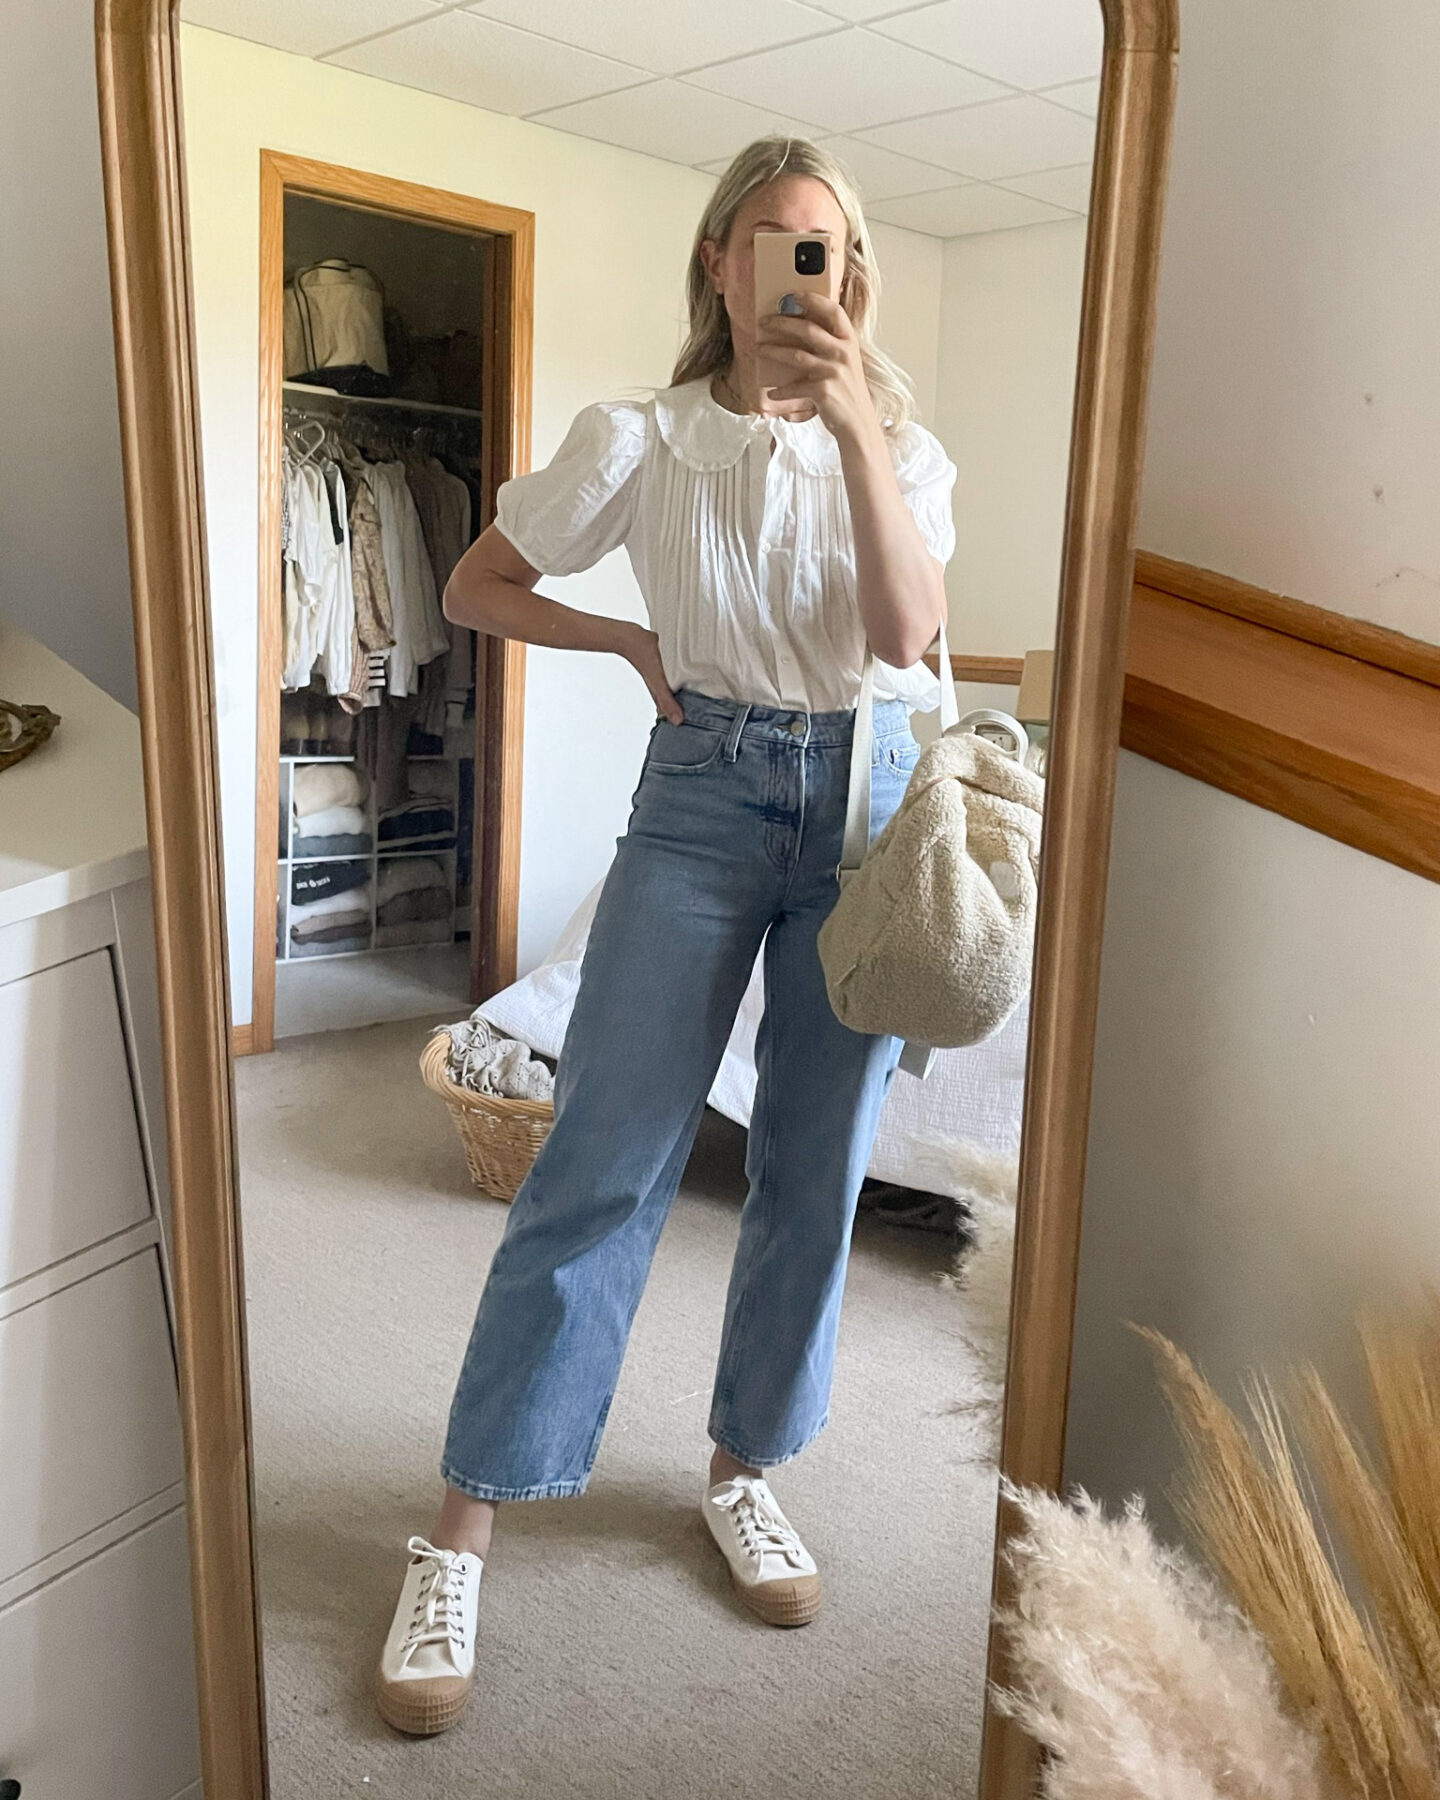 Karin Emily wears a puff sleeve blouse tucked into wide leg jeans with a sherpa backpack and canvas sneakers